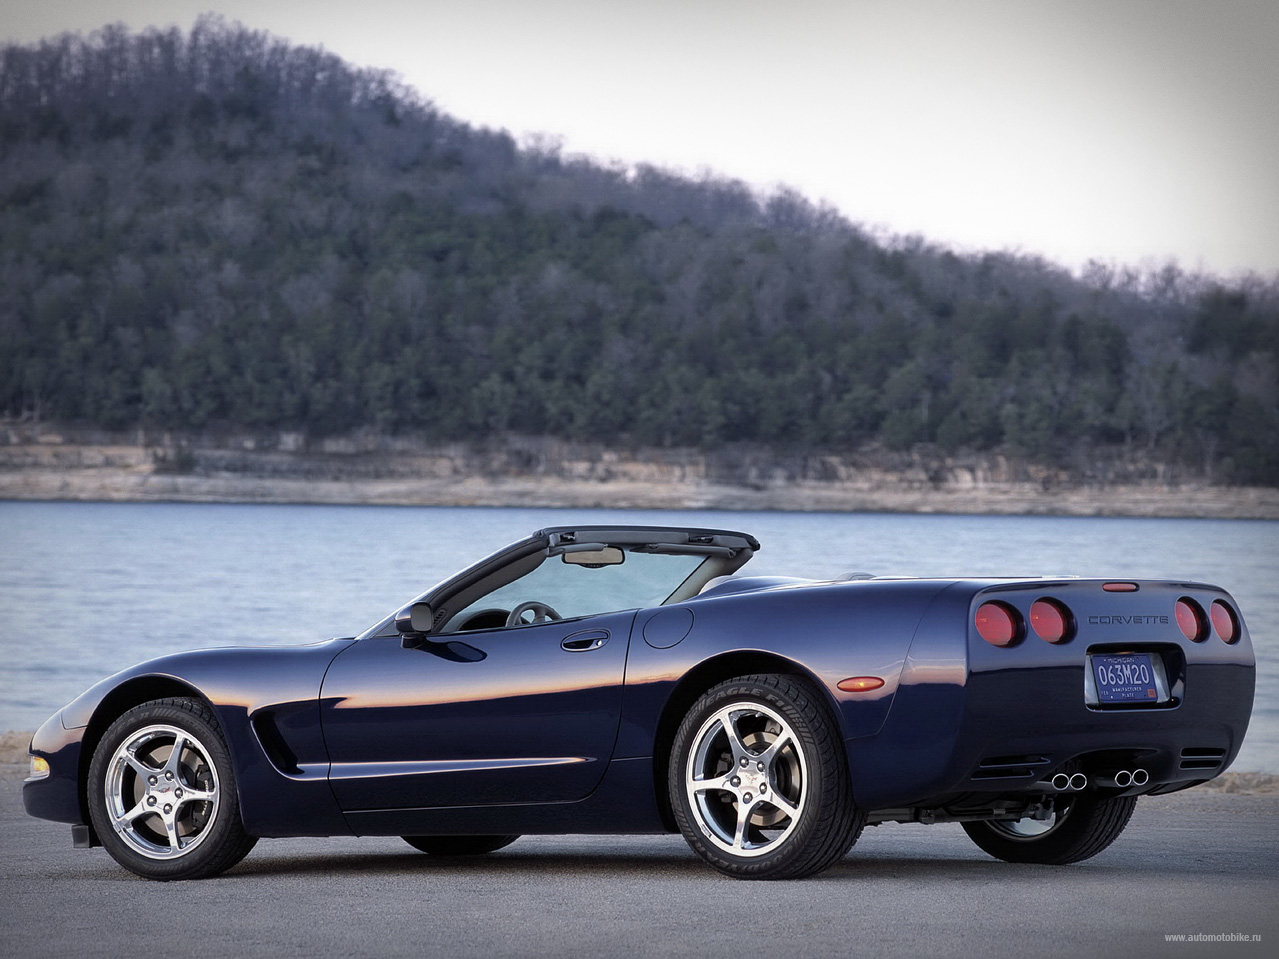 Chevrolet Corvette 5.7 1998 photo - 4